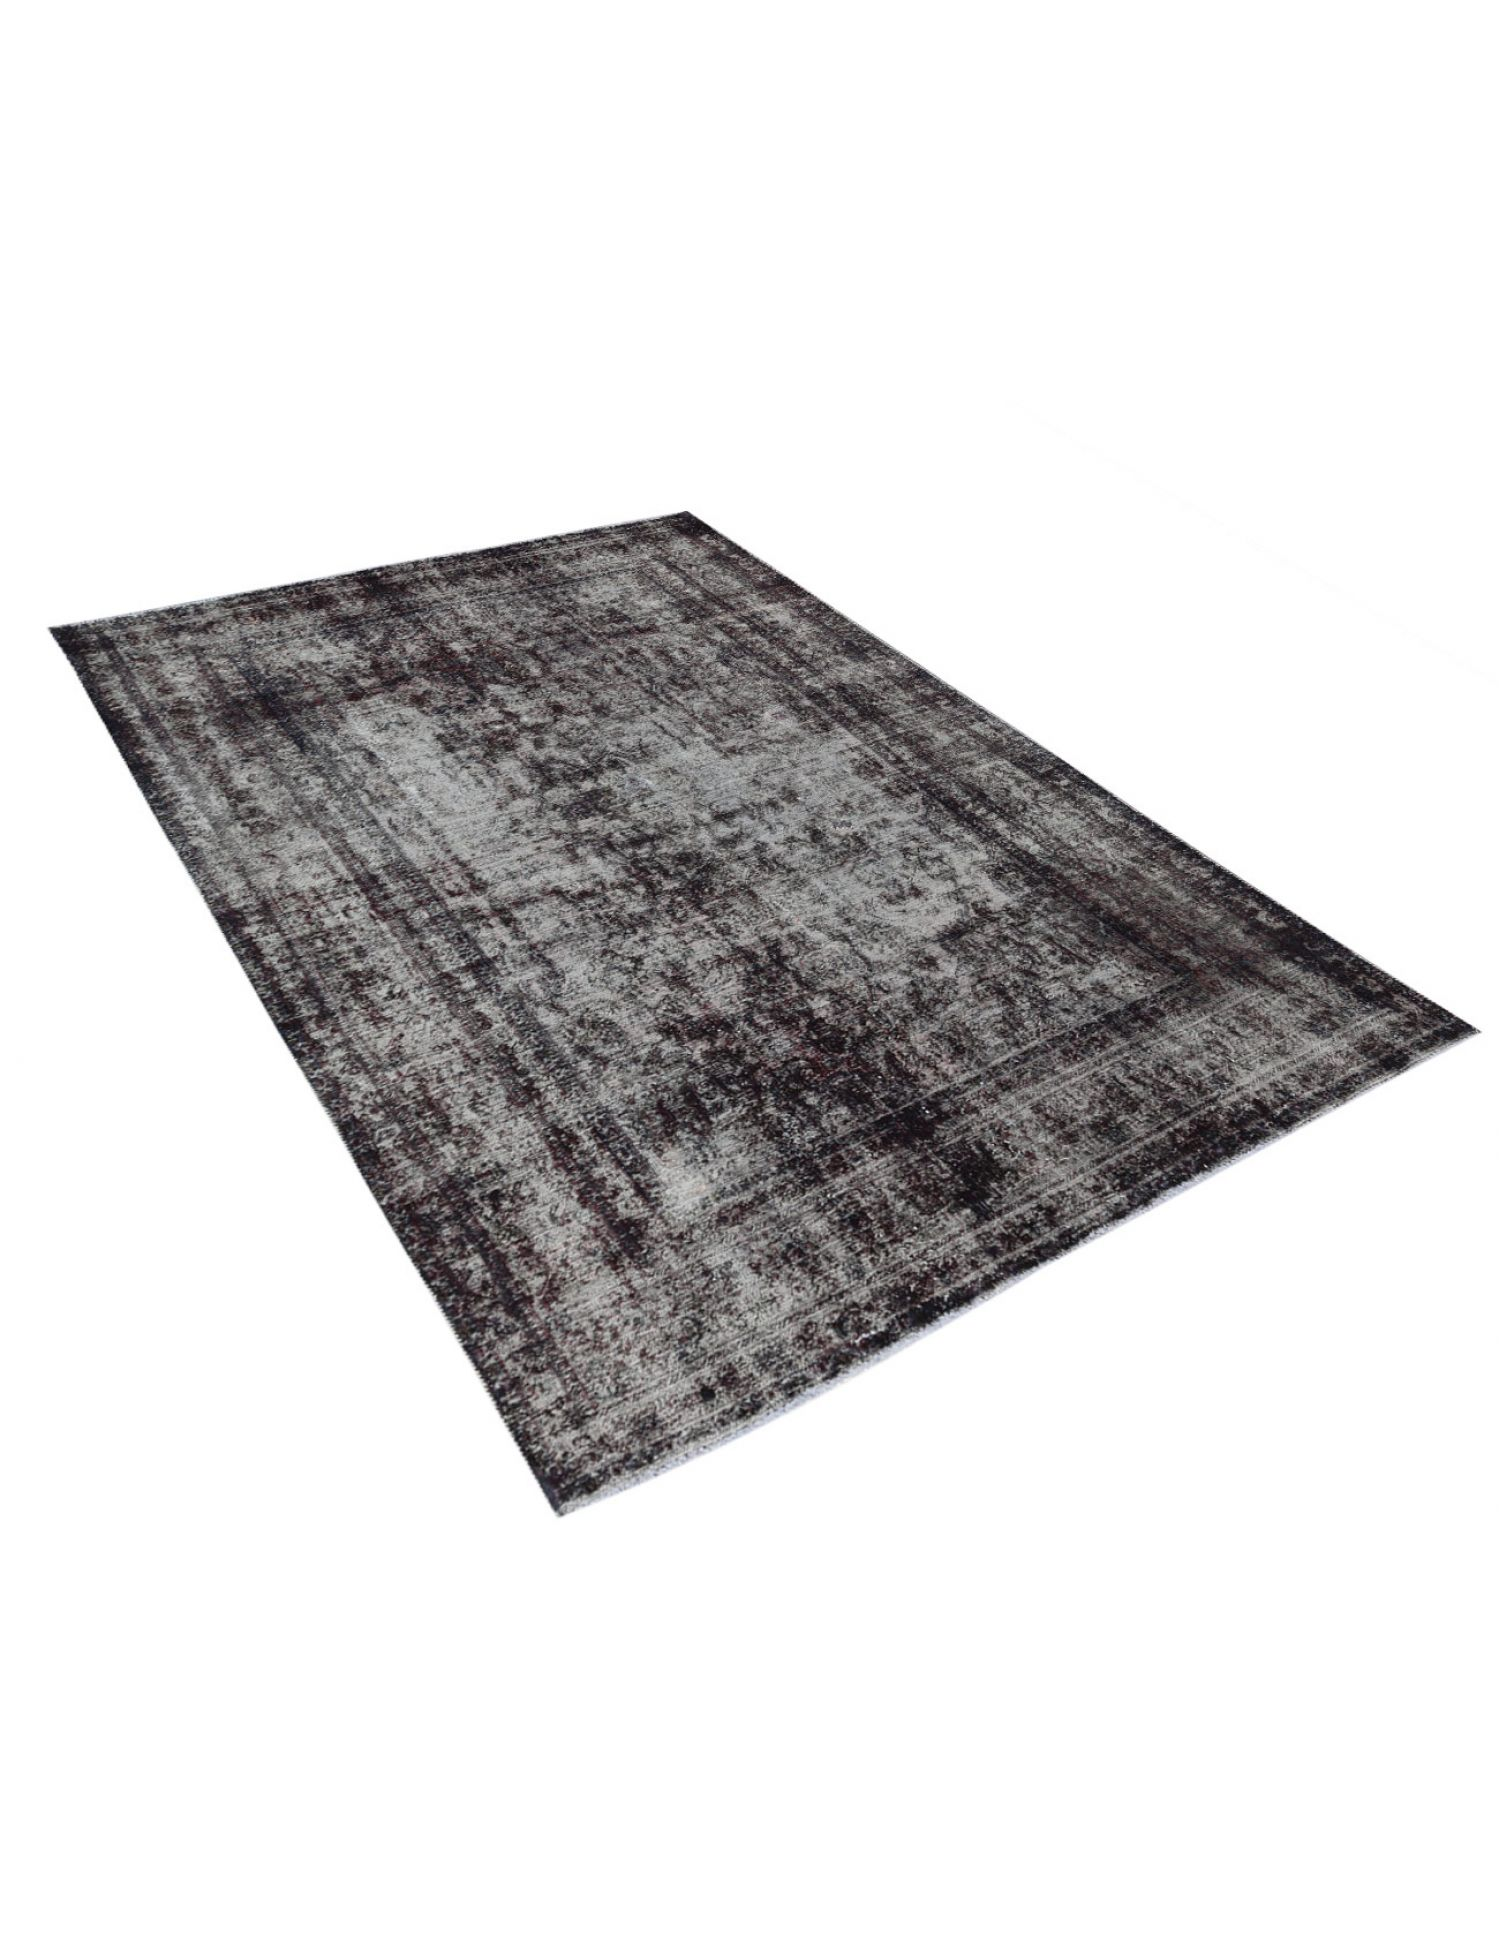 Vintage Carpet  black <br/>336 x 240 cm